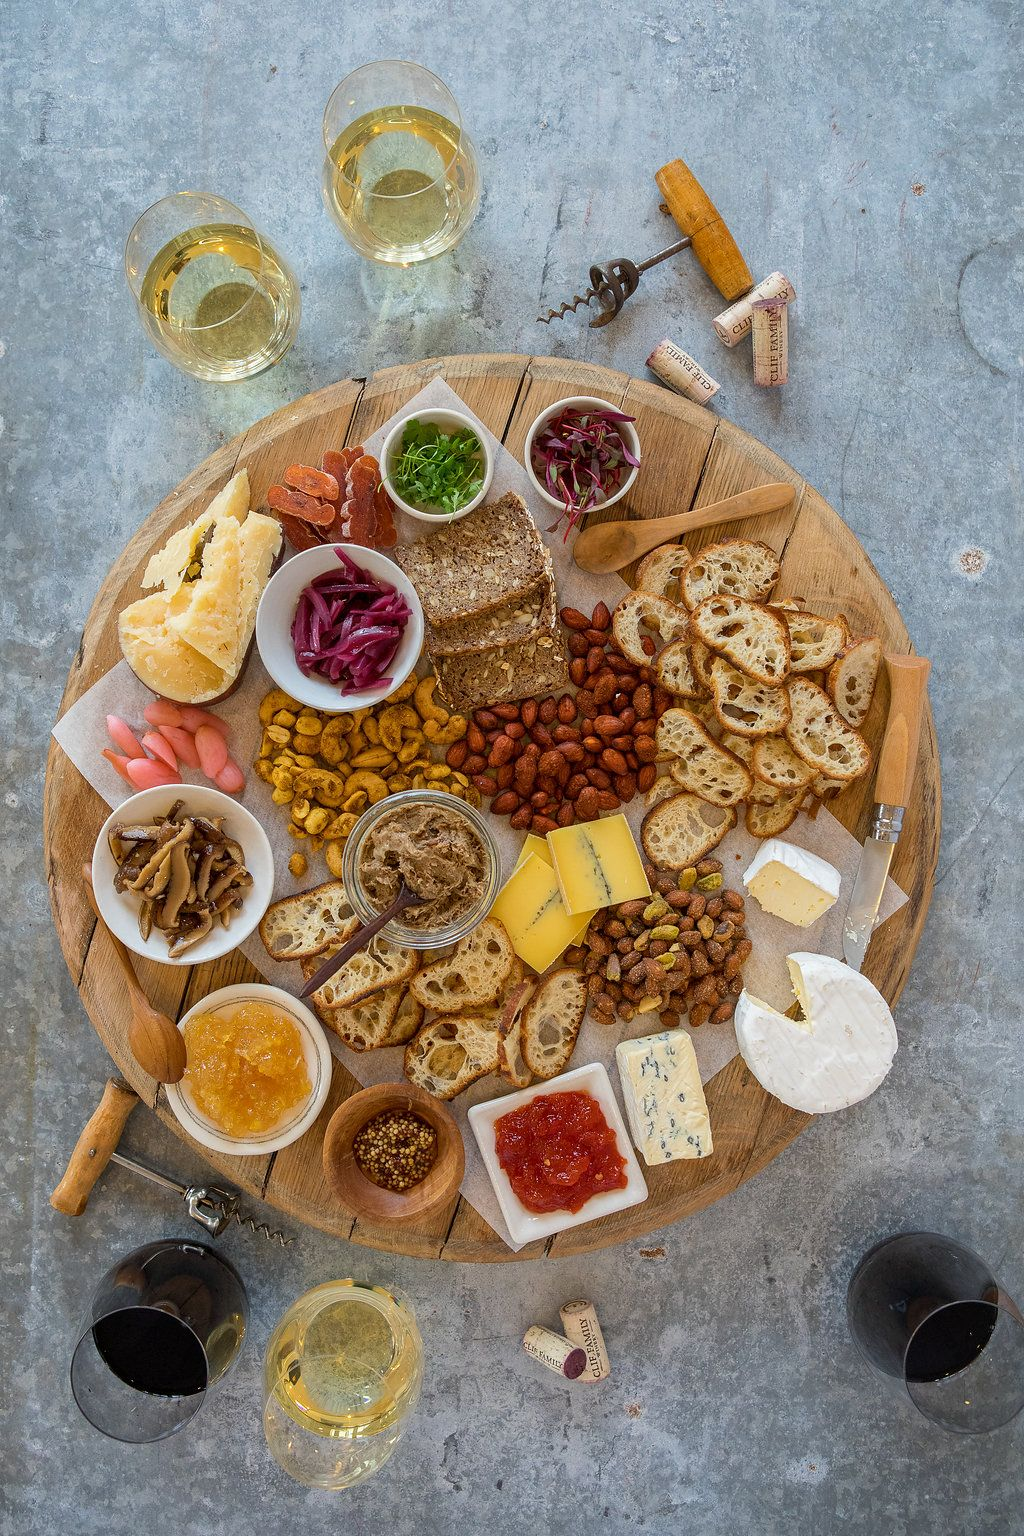 Pair our Clif Family wines with local cheeses, savory nut